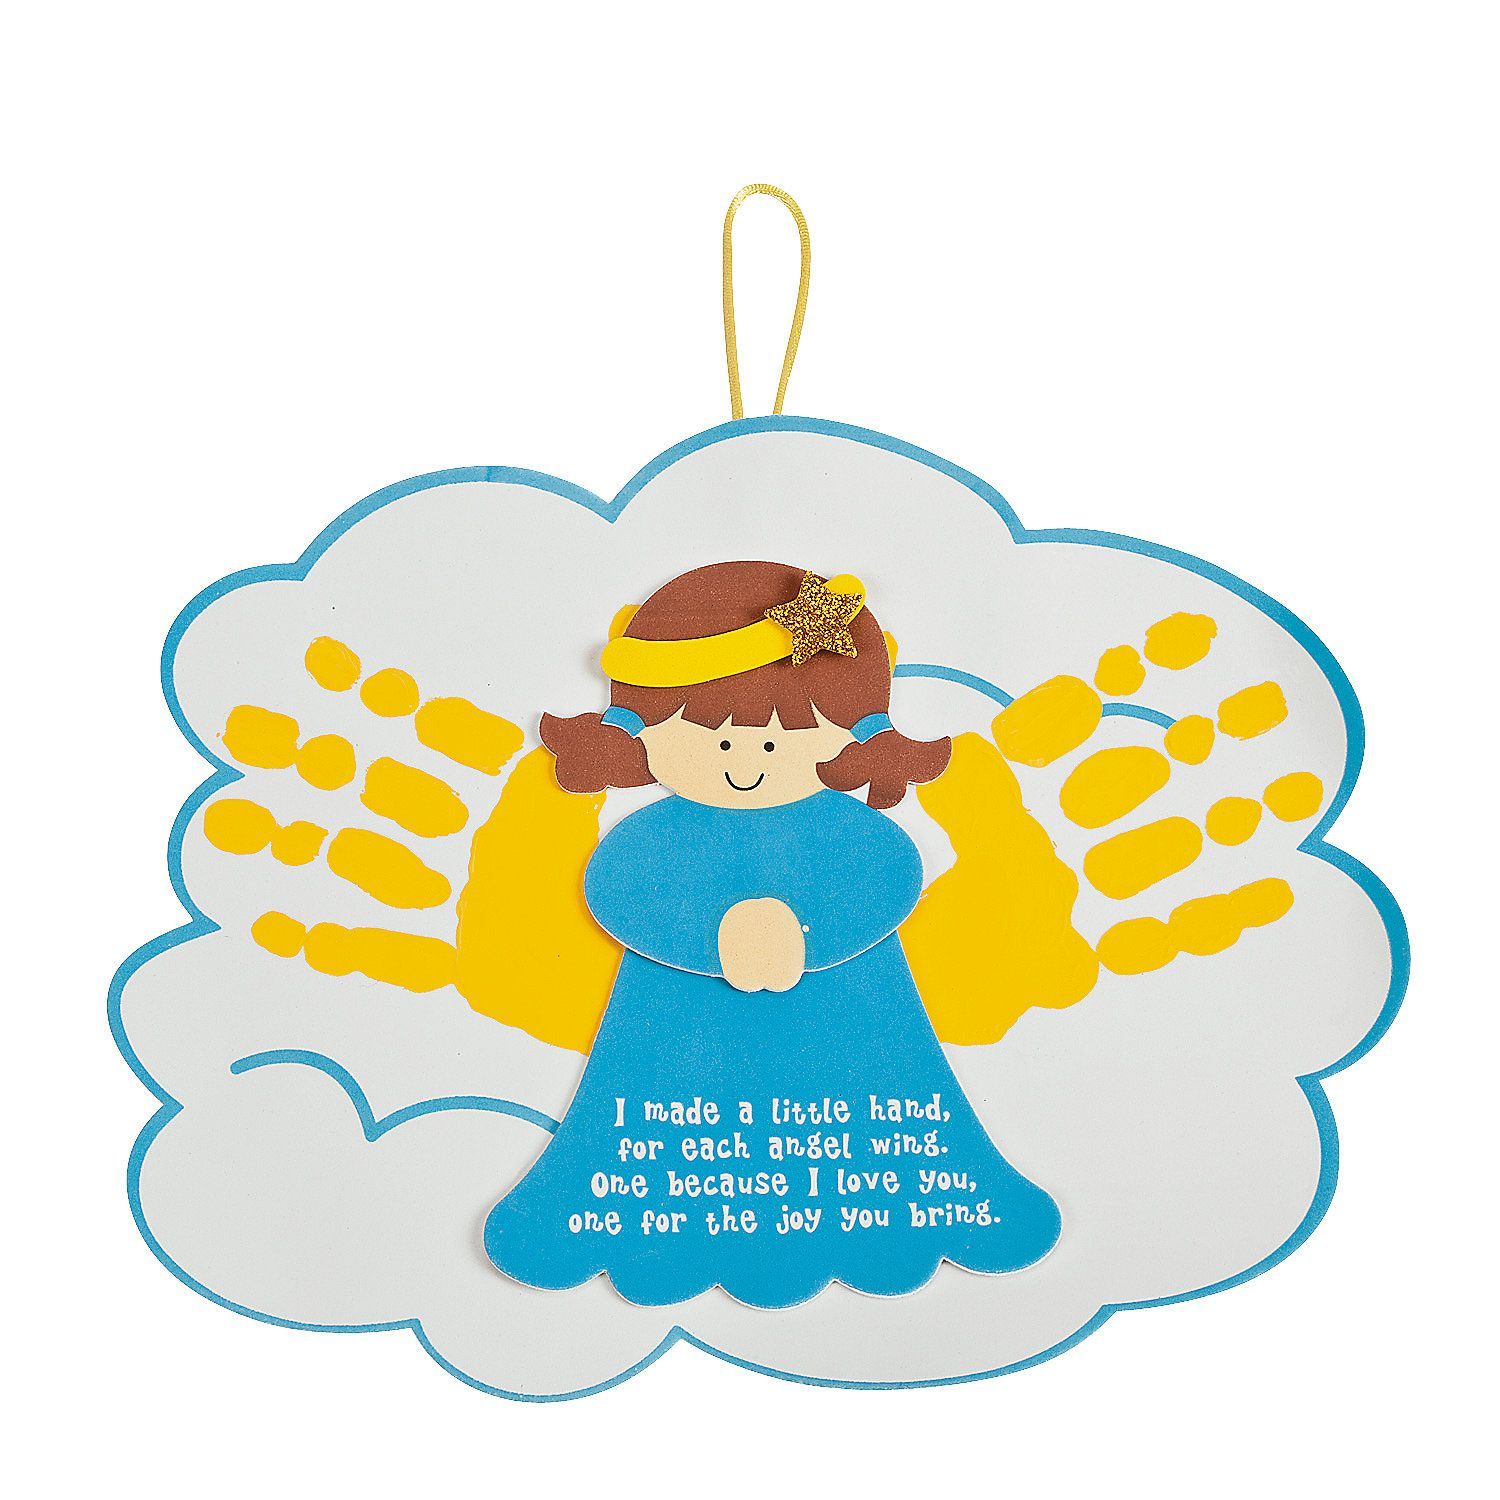 Christmas ornament craft kit - Find This Pin And More On Christmas Ornament Gift Ideas Angel Handprints Poem Ornament Craft Kit